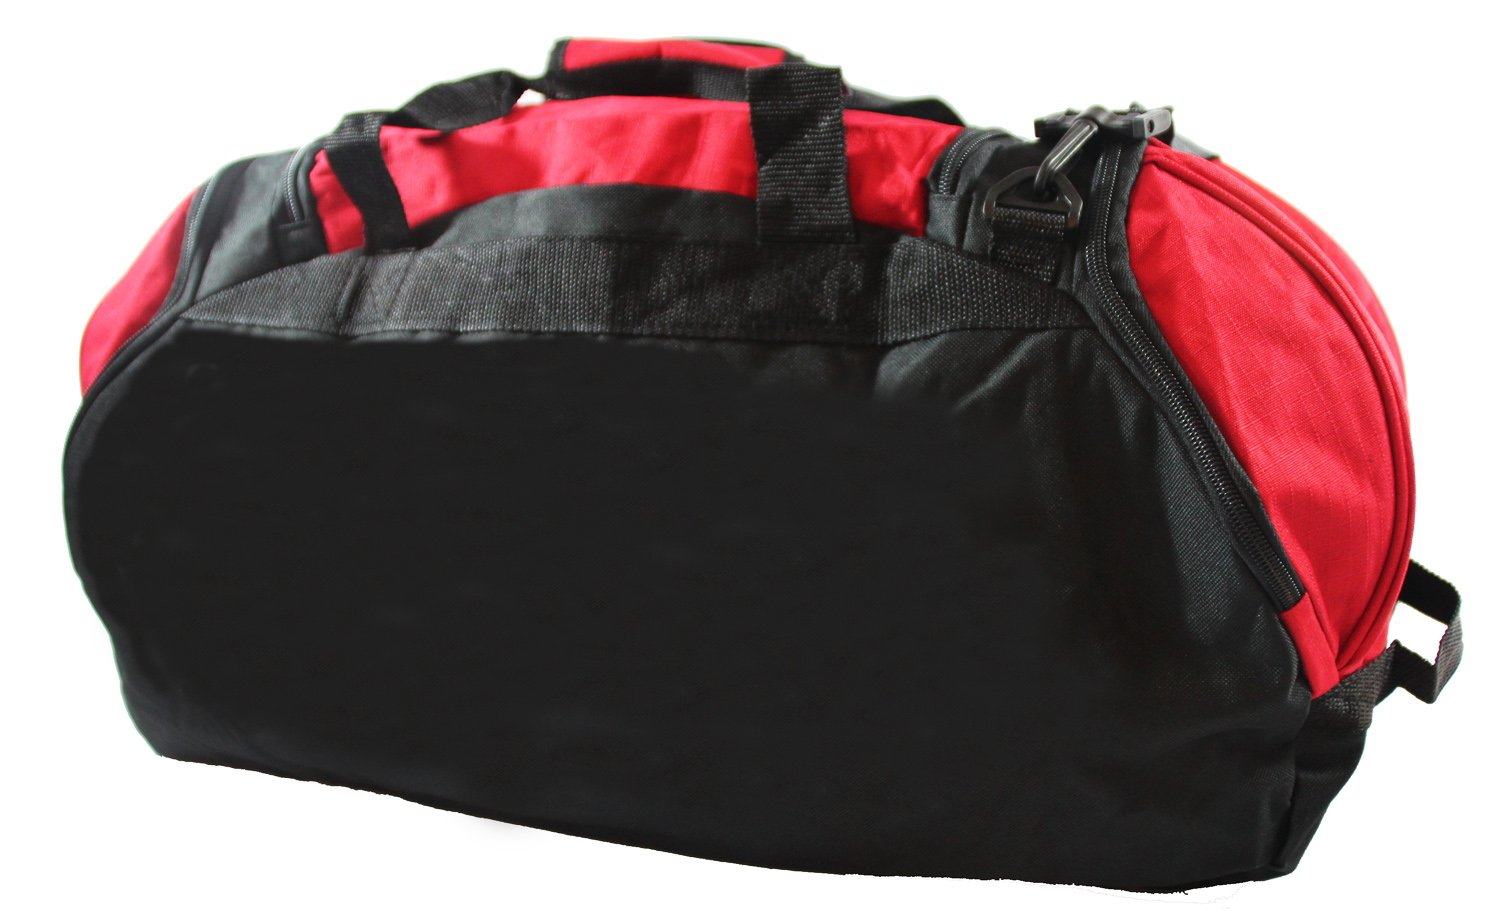 Xtitix Sport Gym Travel Deluxe Rip Stop Stylus Duffel Bag, 25'' L, Red by Xtitix (Image #3)